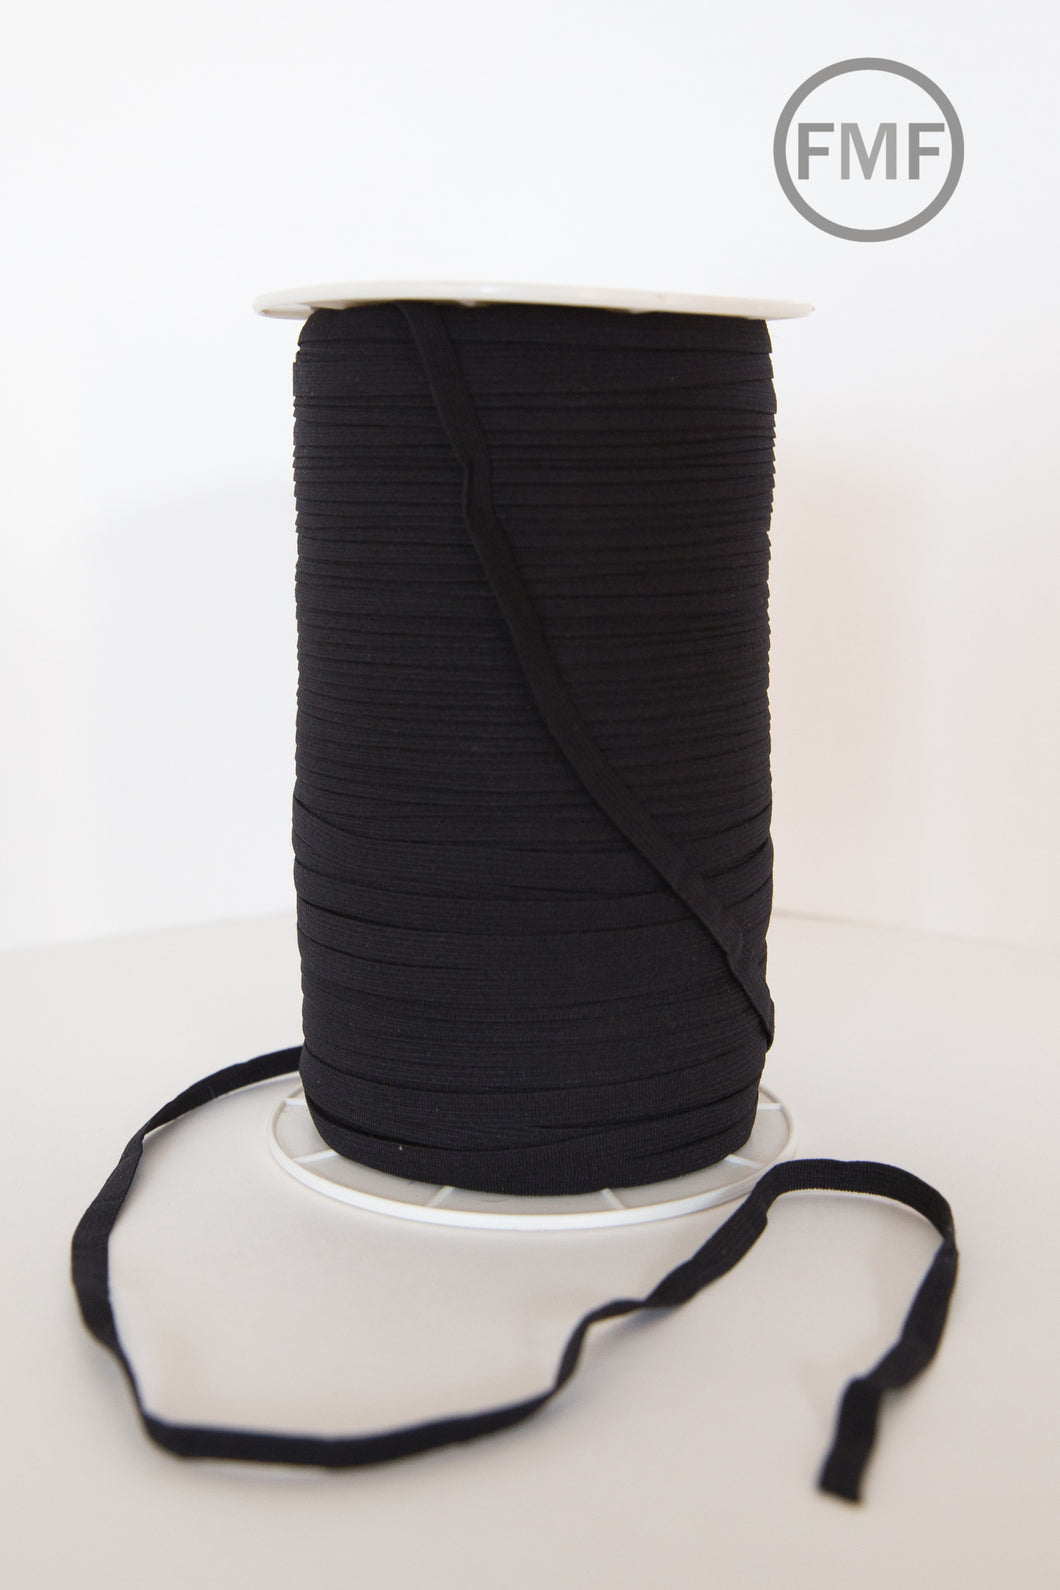 1/4-Inch (6 mm) Black Elastic Trim, Moda Fabrics, E180B, Sold by the Yard